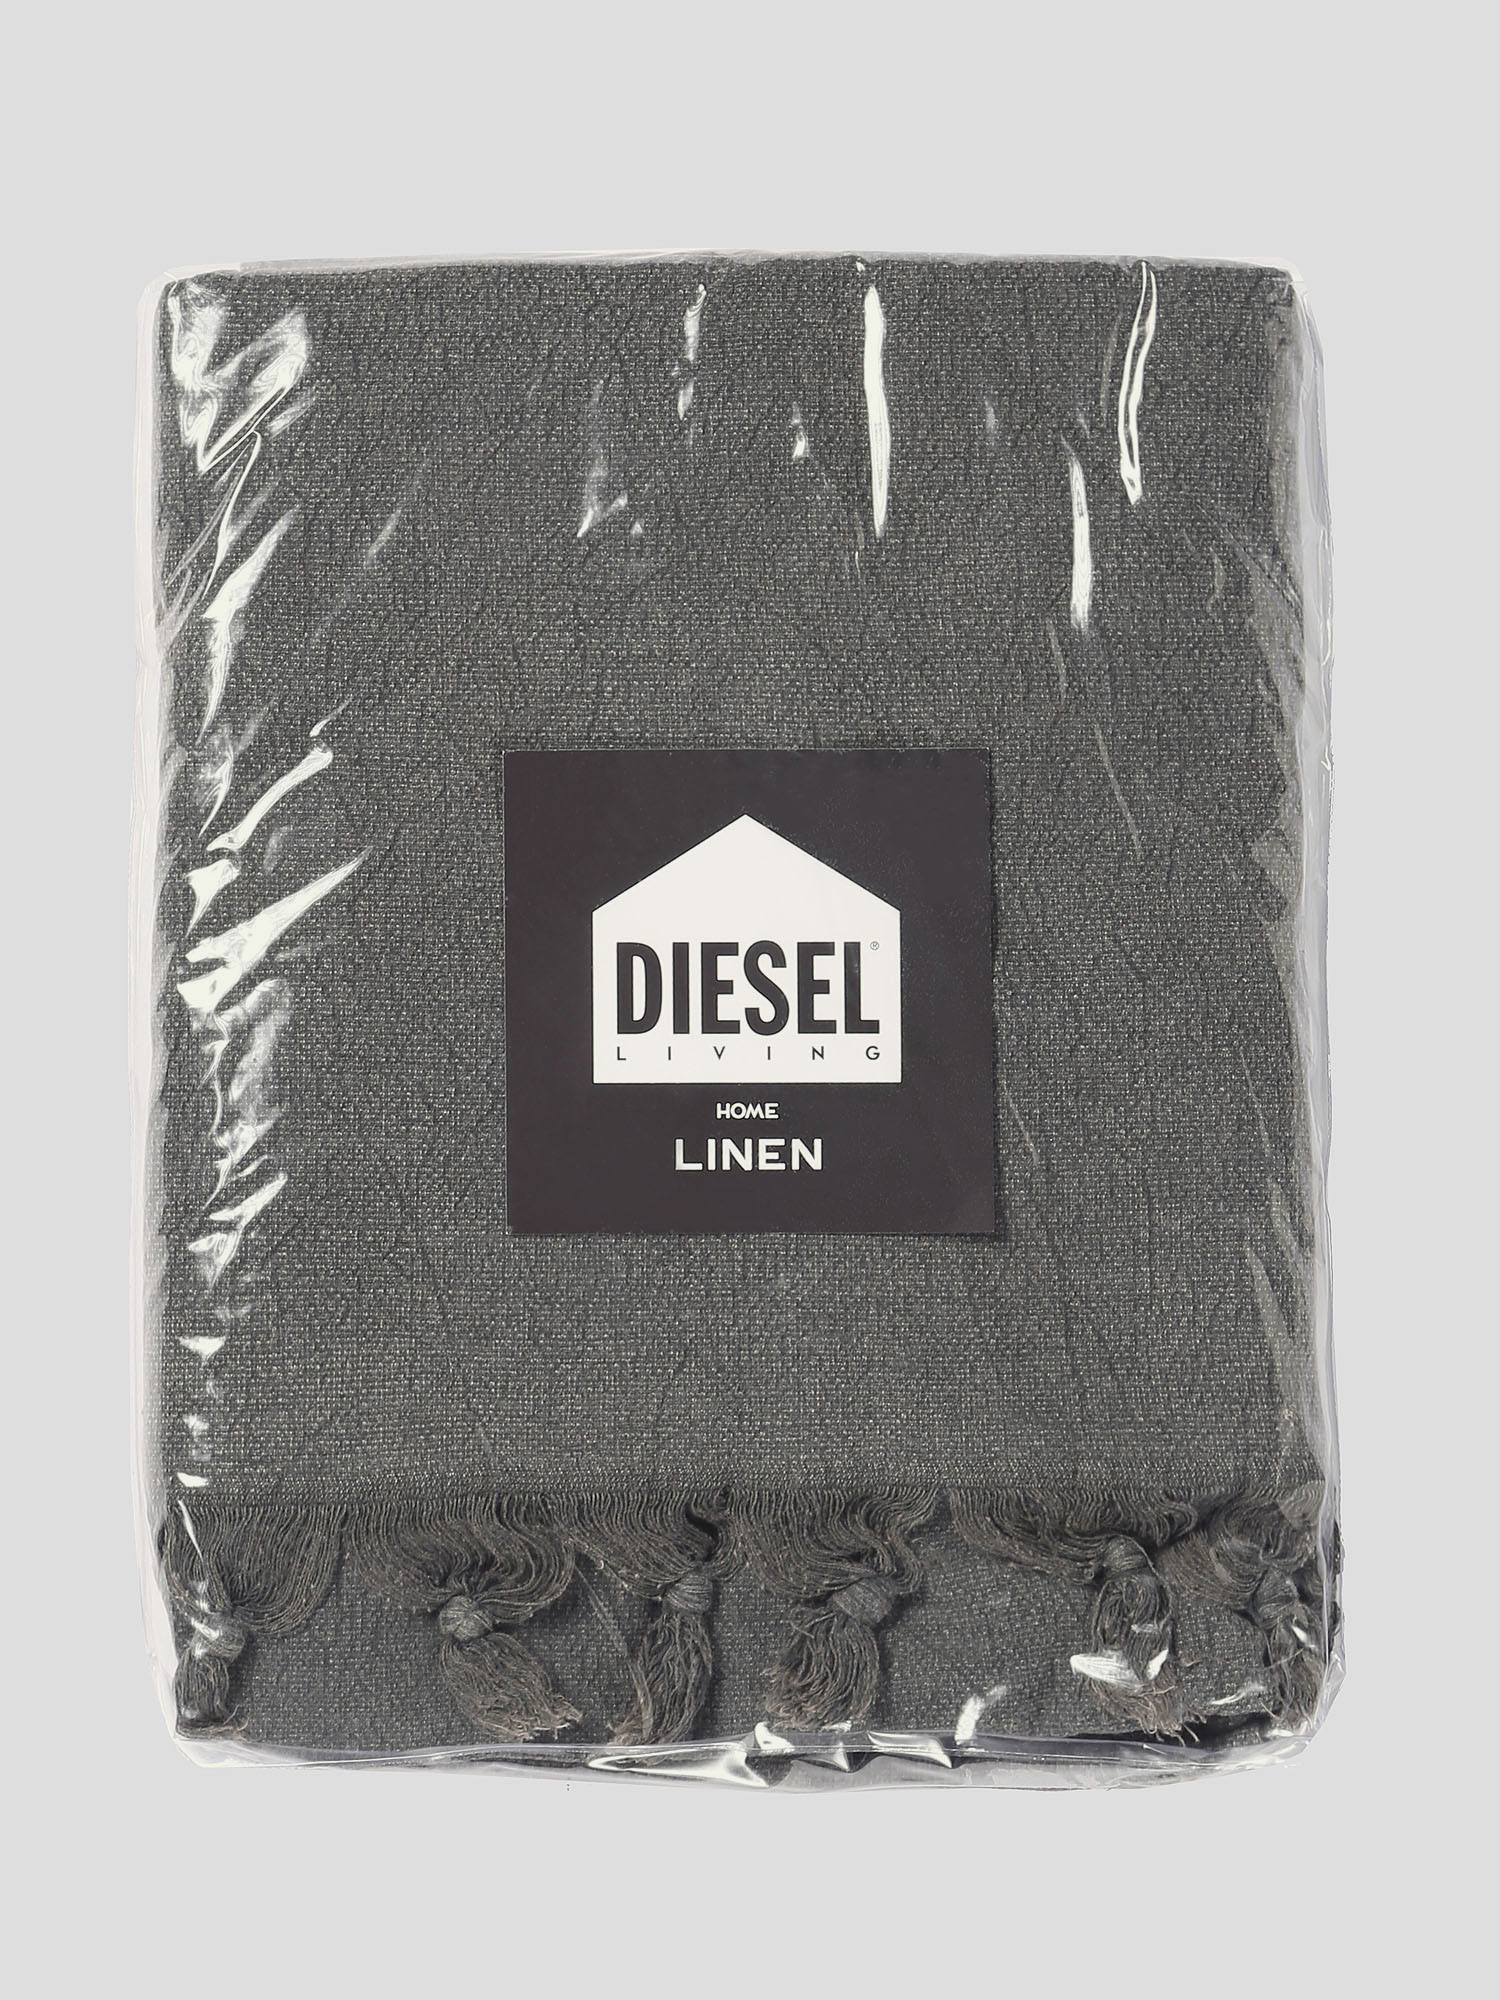 Diesel - 72357 SOFT DENIM,  - Bath - Image 2